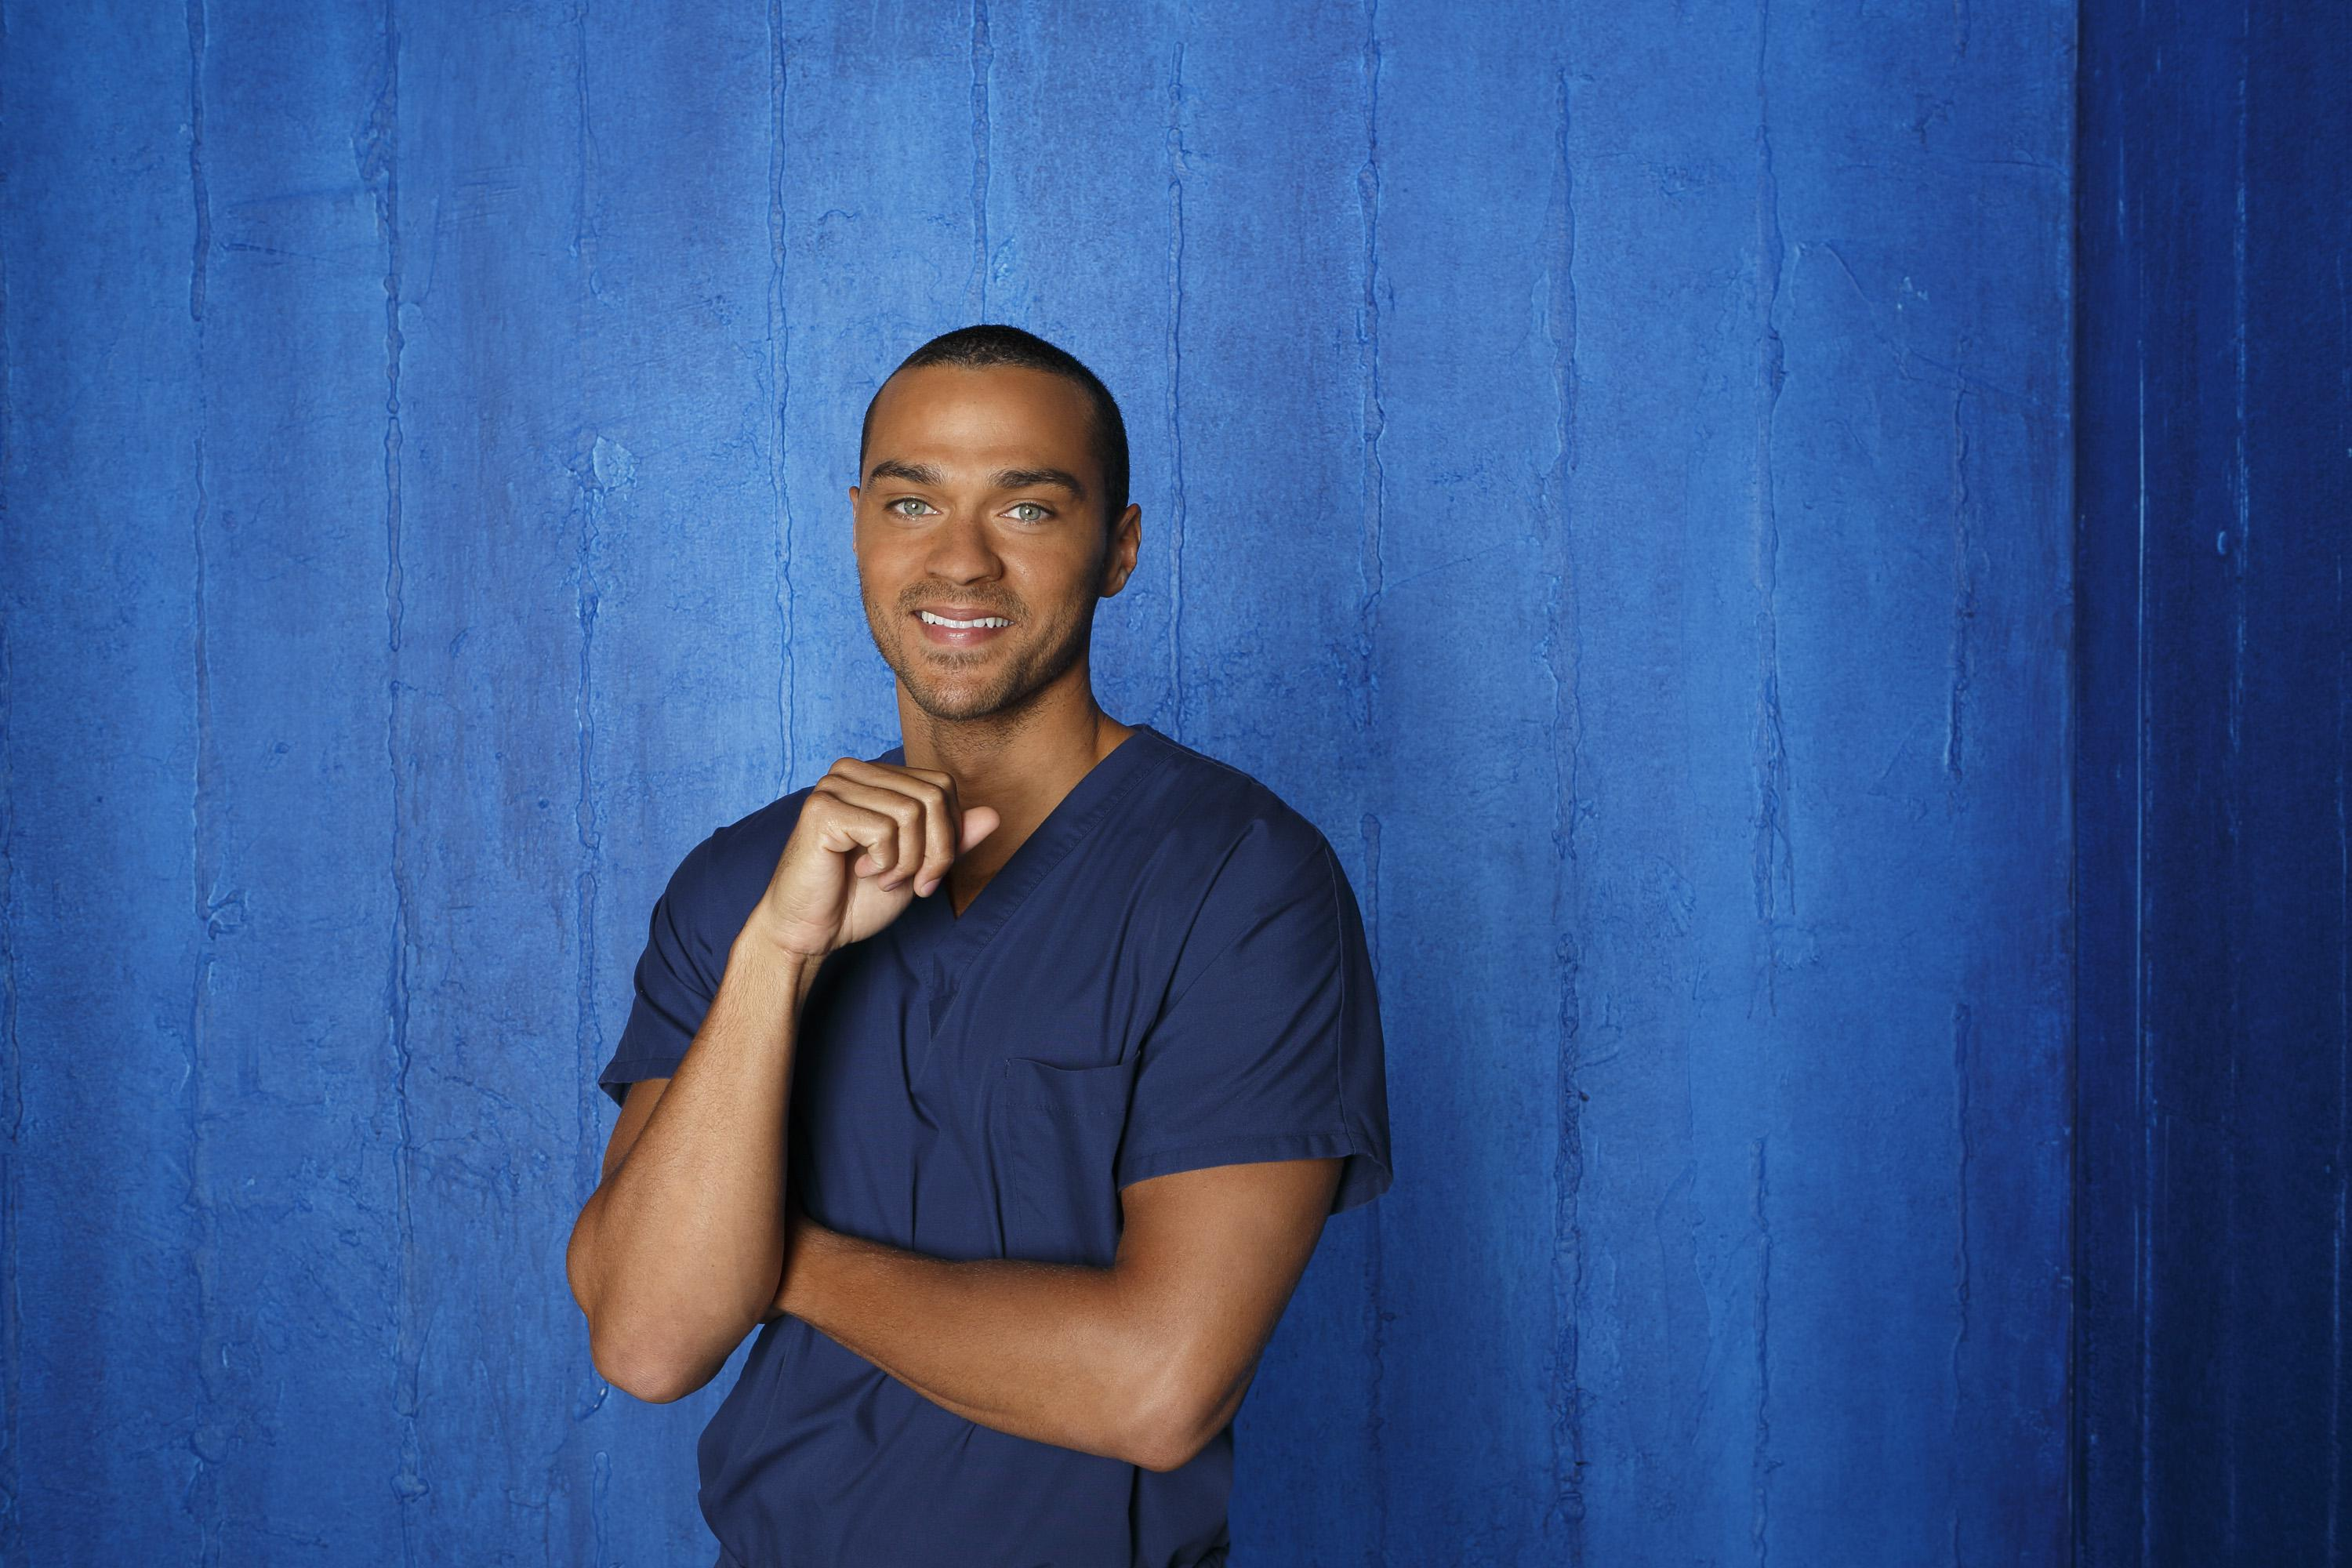 Greys-Anatomy-S09-Jesse-Williams-8-dvdbash | DVDbash